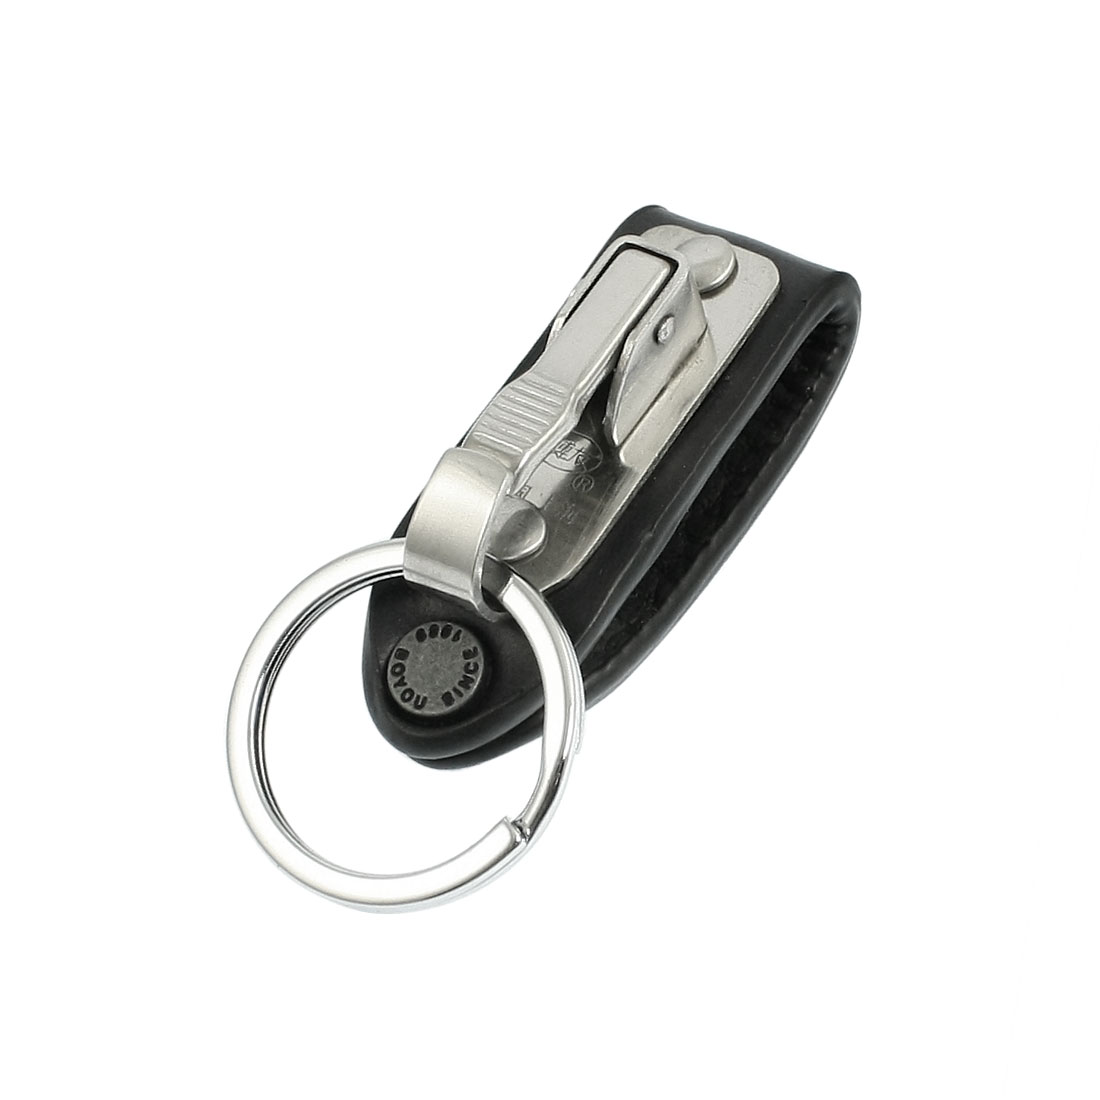 Stainless Steel Keyring Design Faux Leather Belt Loop Key Chain